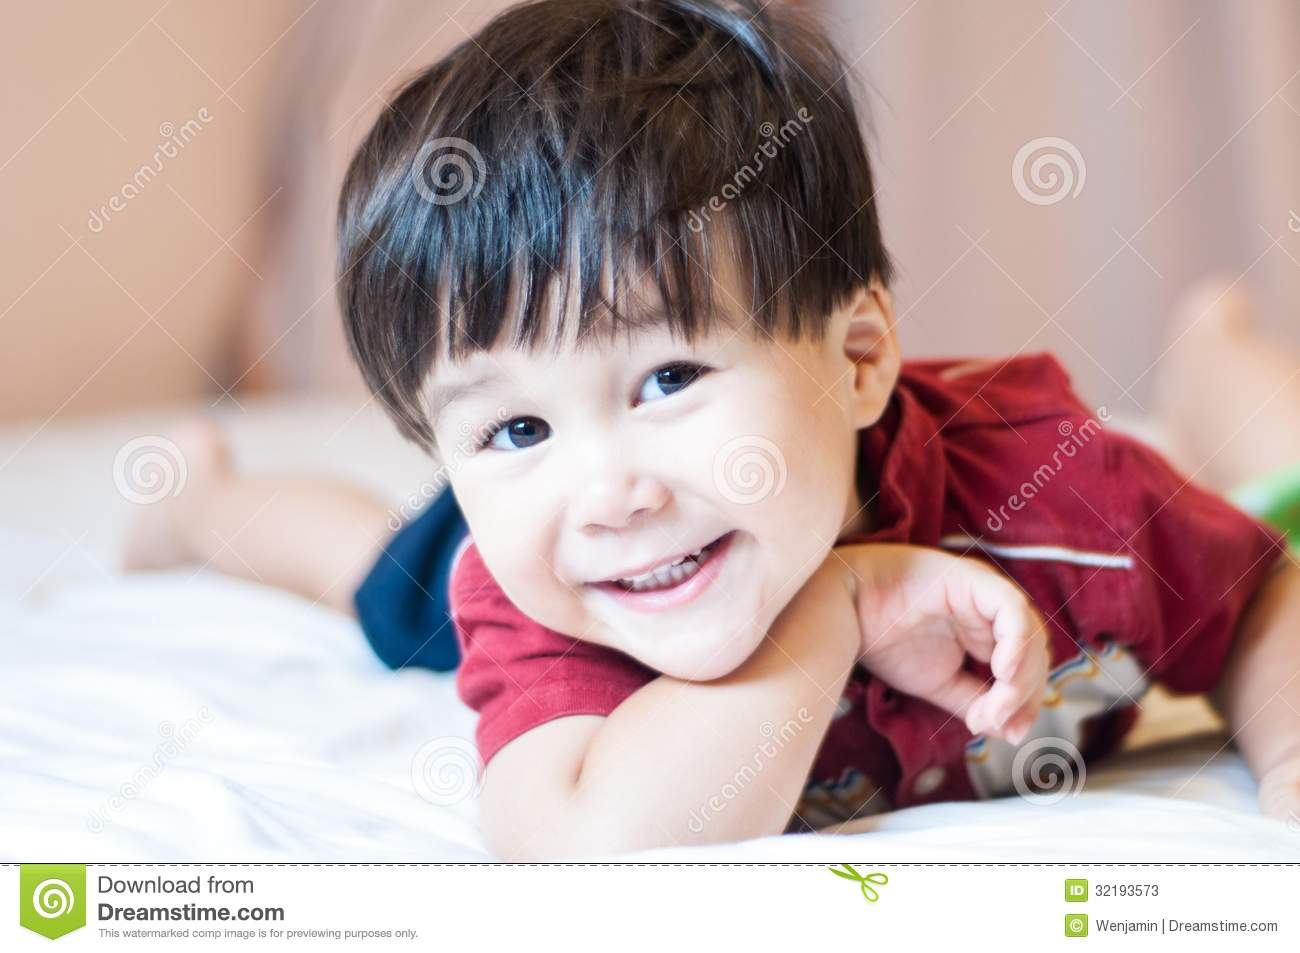 Eurasian Toddler Boy Smiling On A Bed. Stock Photos - Image: 32193573